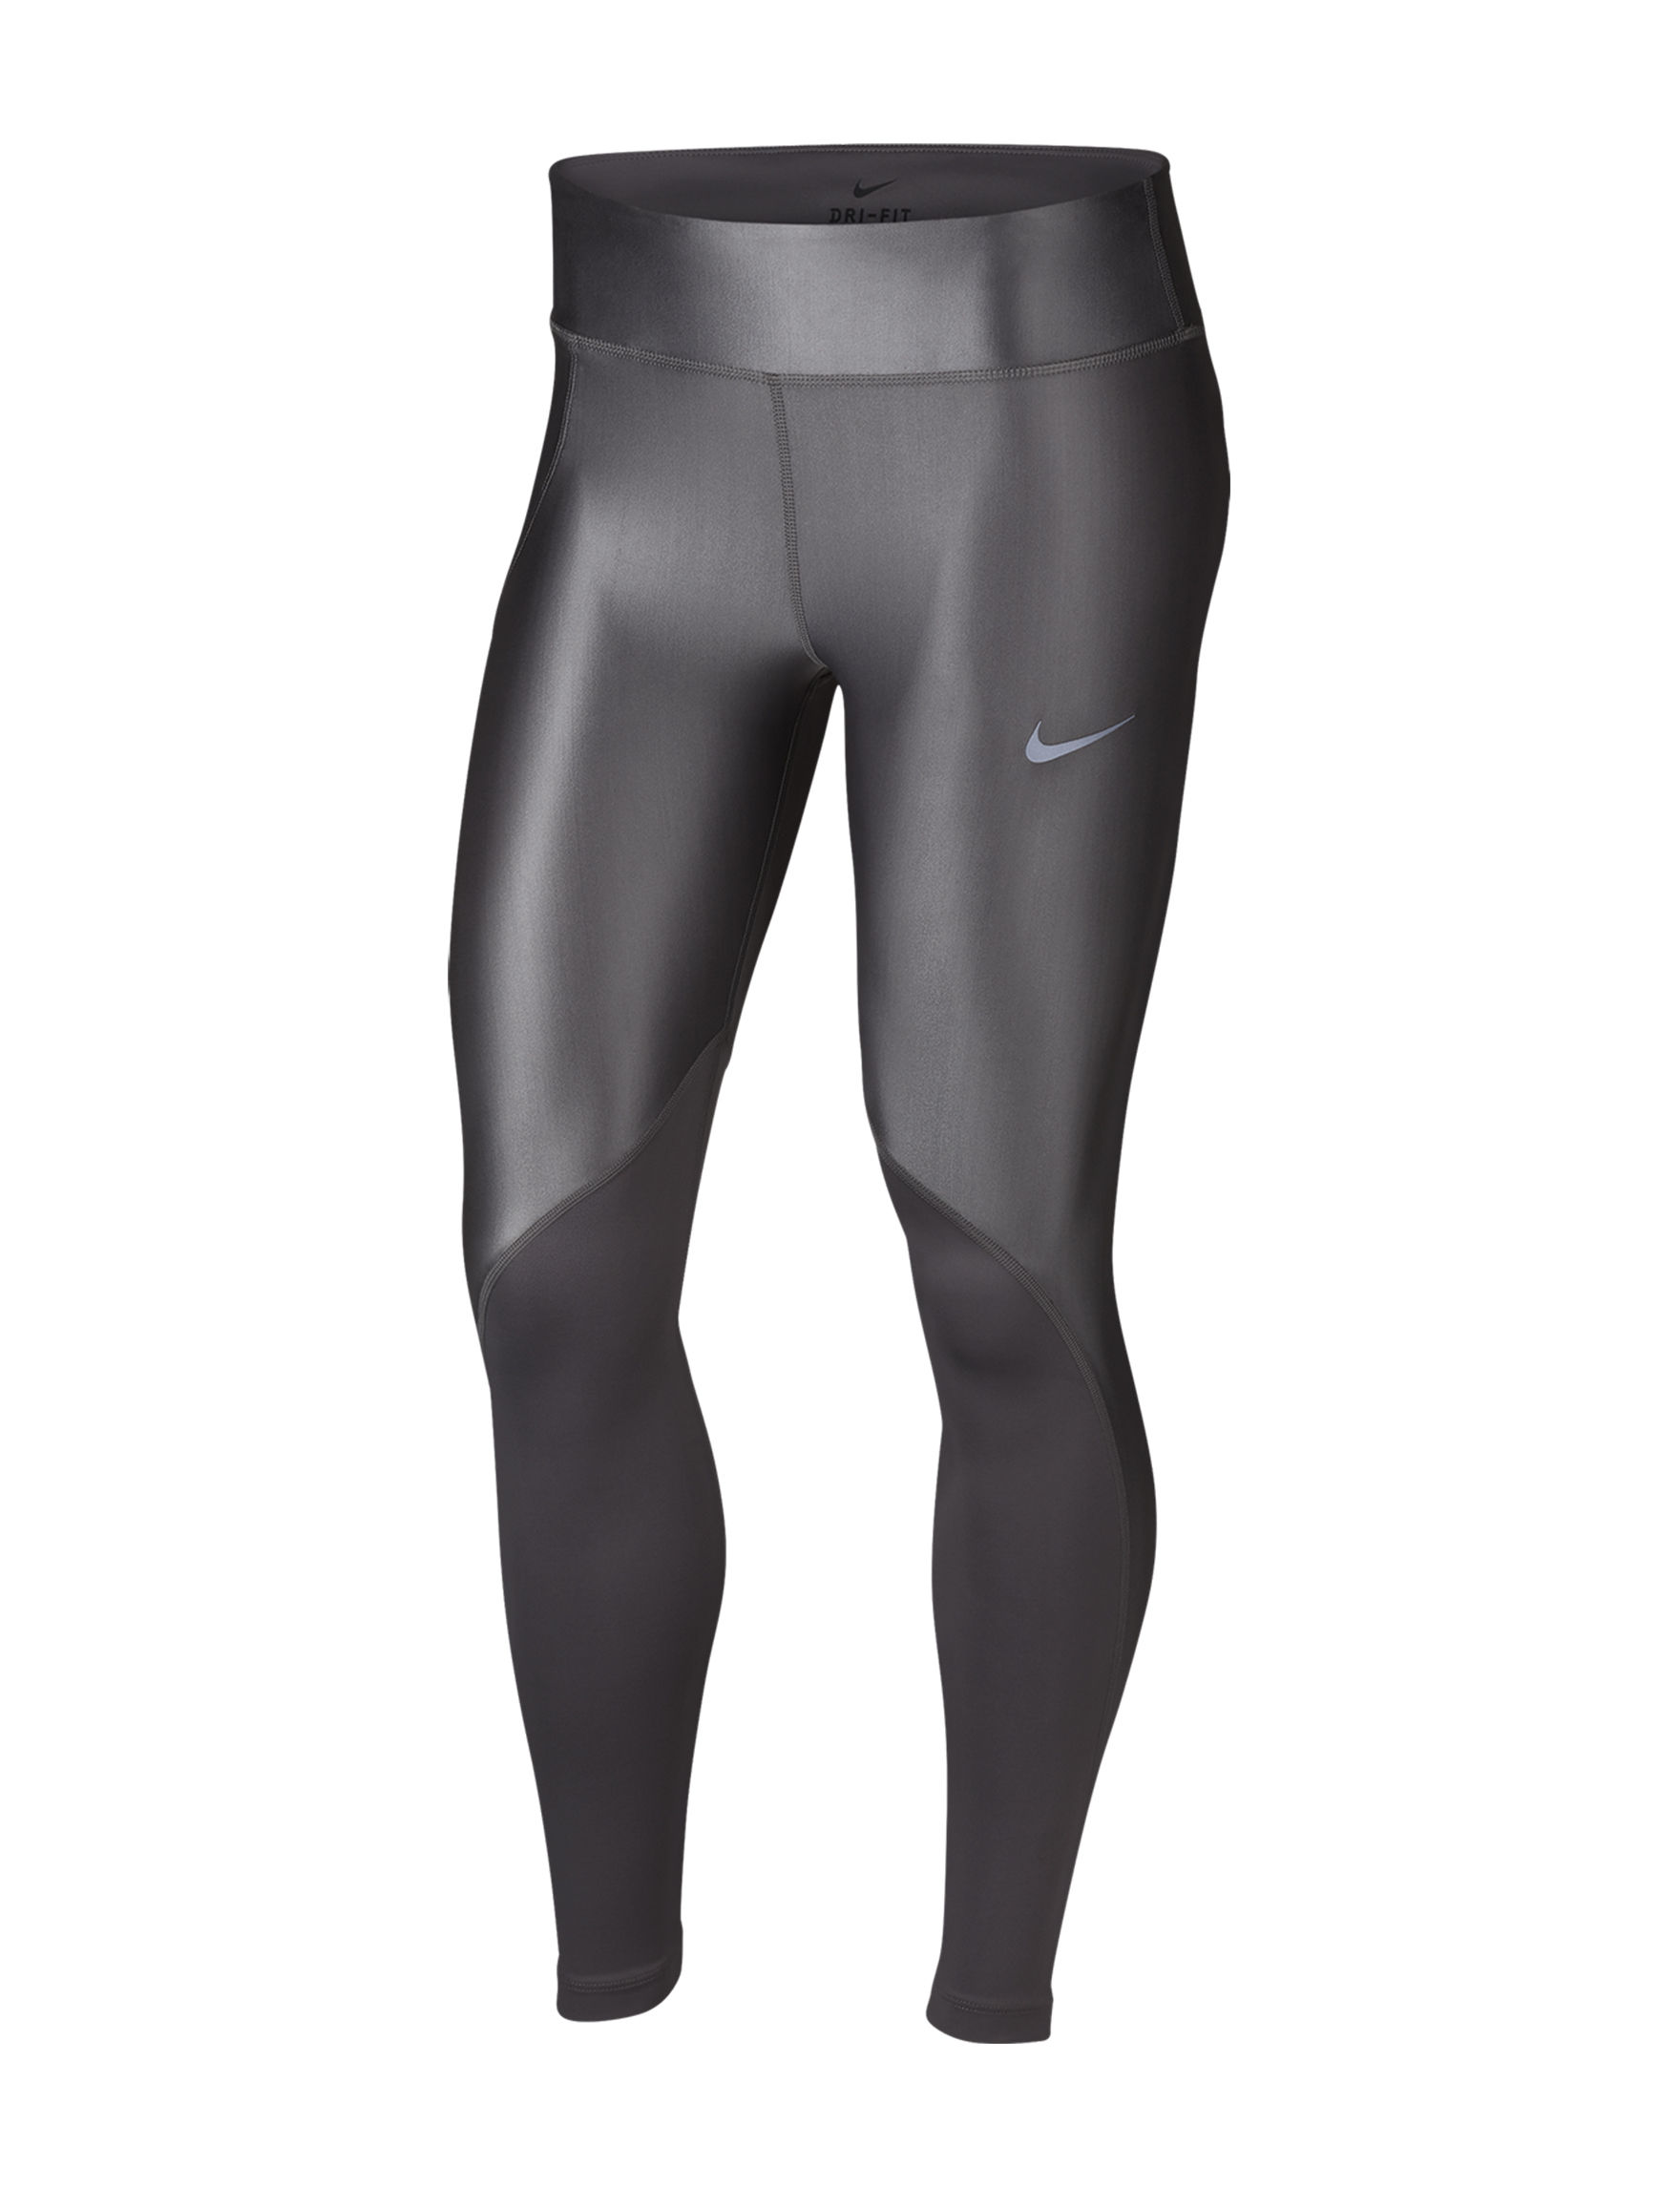 Nike Grey Leggings